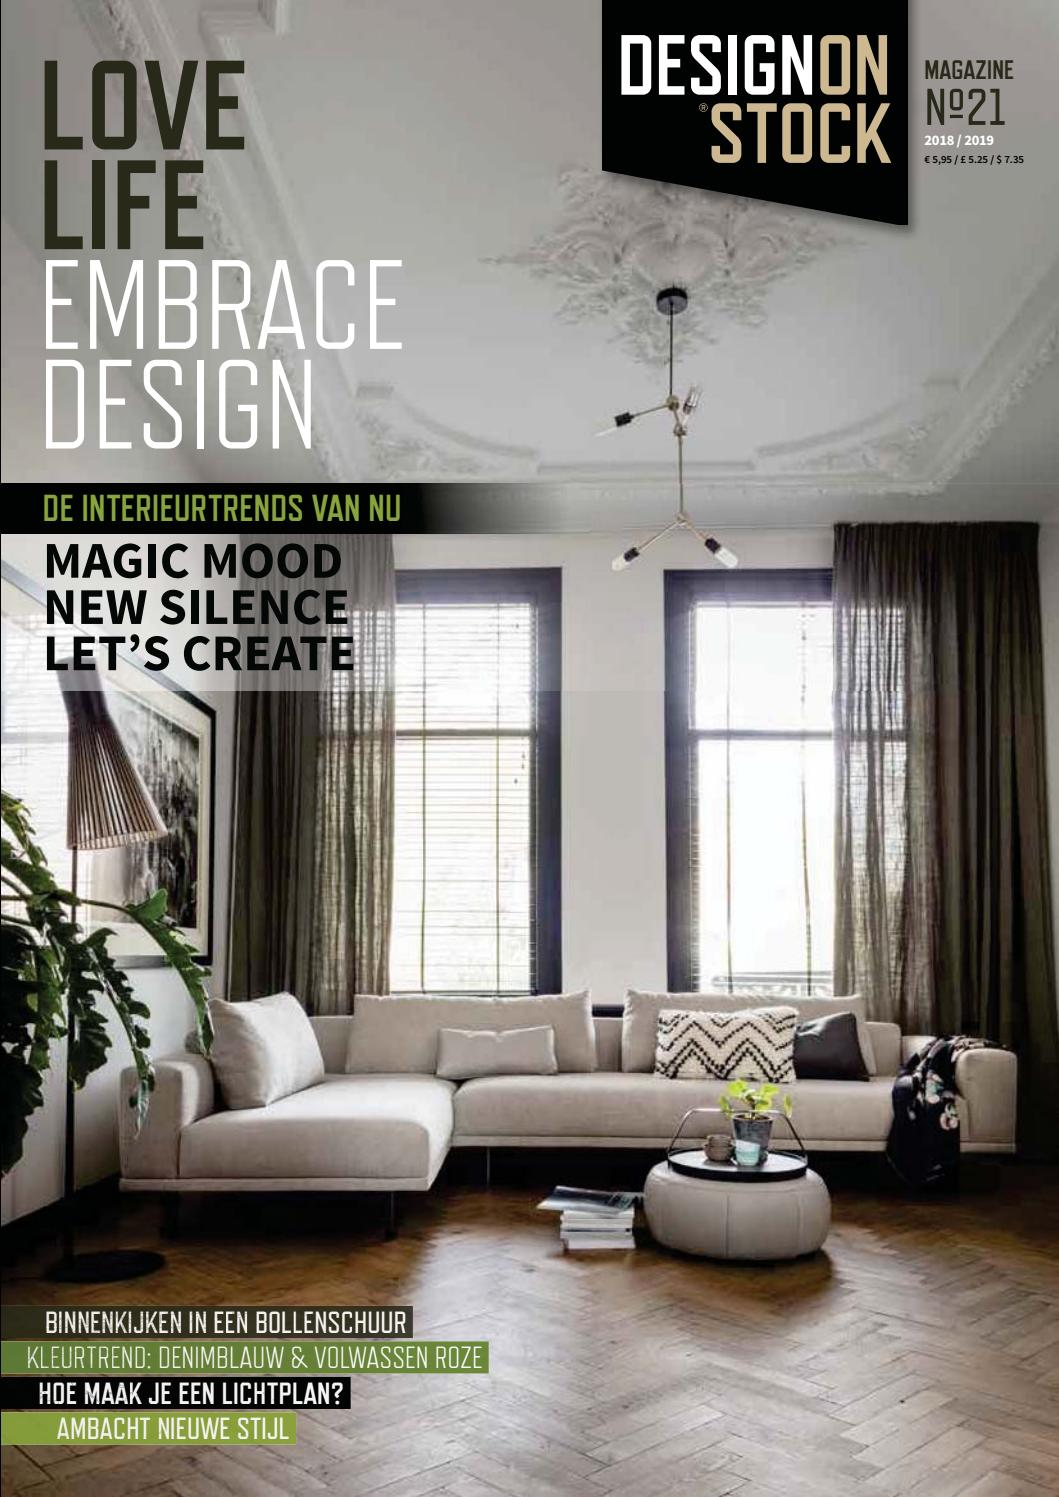 Badkamer Put Stinkt Design On Stock Magazine